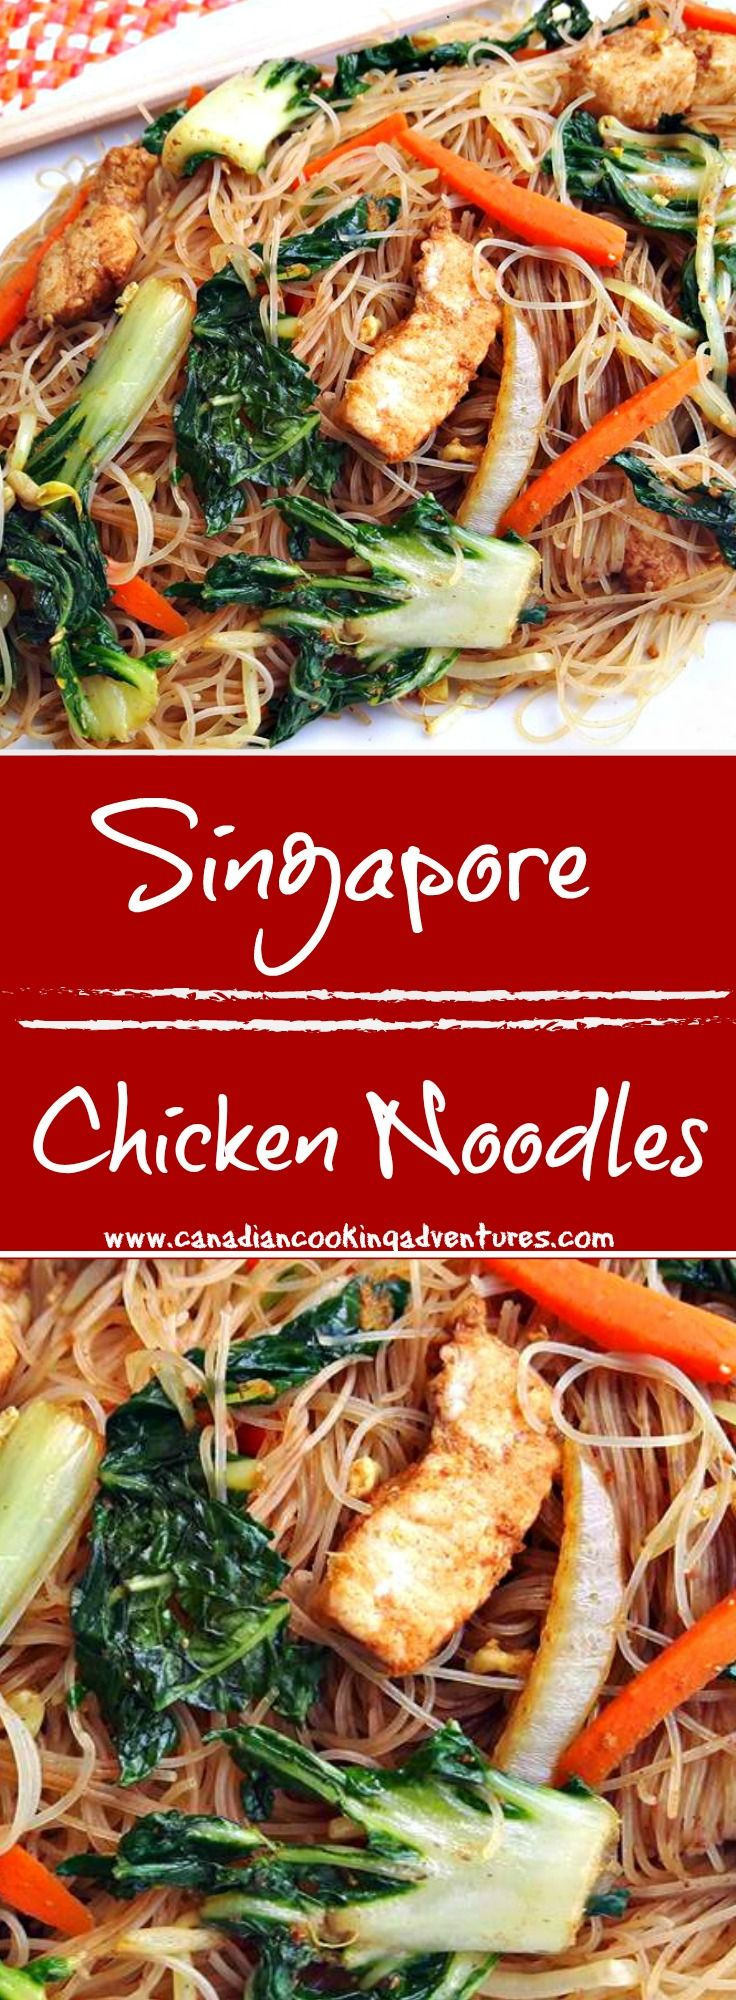 Singapore Chicken Noodles Whole Food Recipes Asian Recipes Recipes